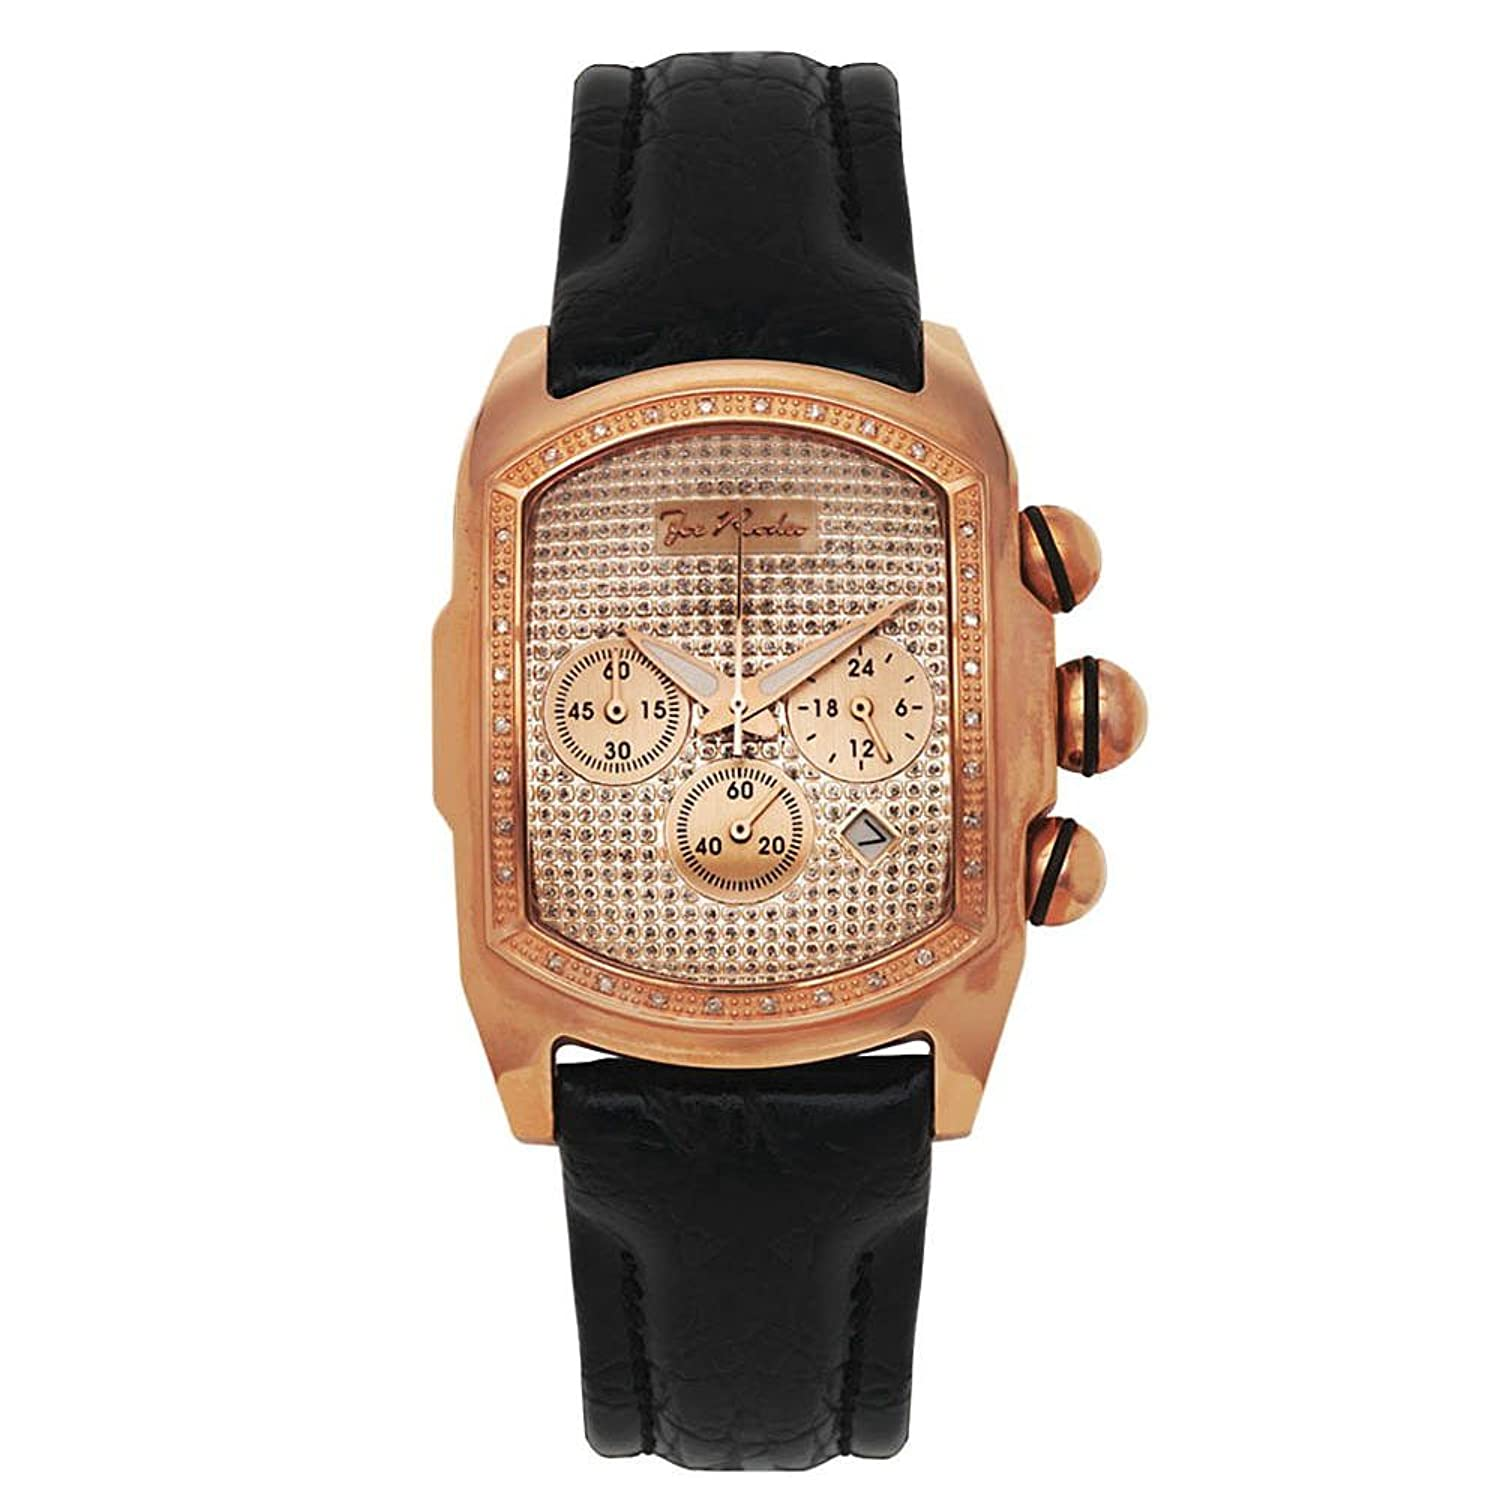 Joe Rodeo Diamant Herren Uhr - KING rose gold 0.36 ctw